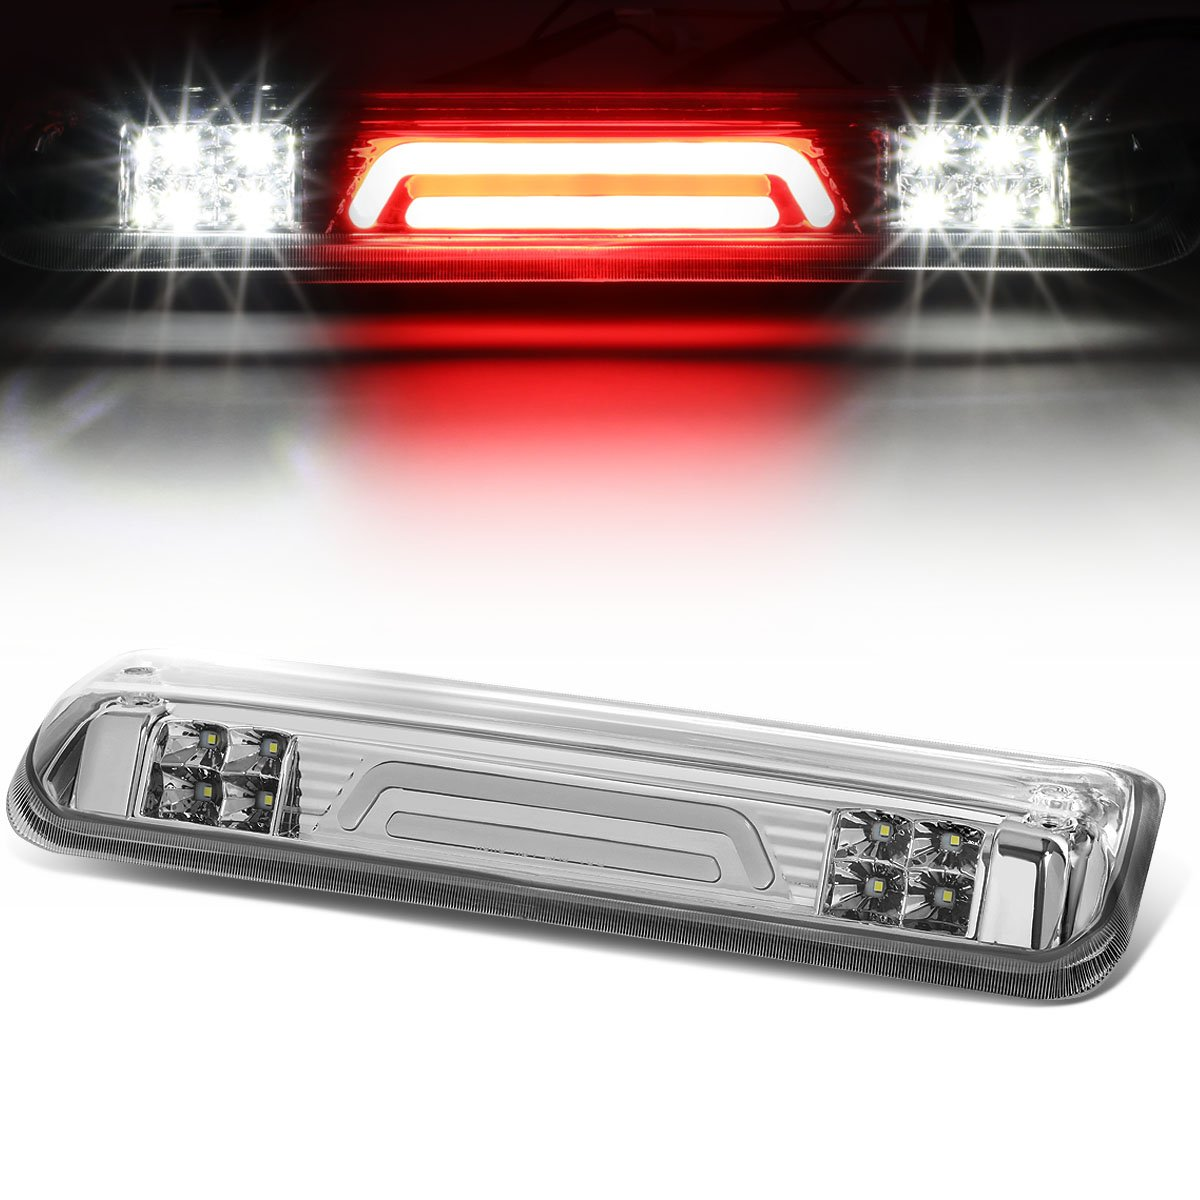 For Ford Explorer Sport Trac/F-150 3D LED Light Bar Third Brake Lamps (Chrome Housing/Clear Lens) 4th Auto Dynasty